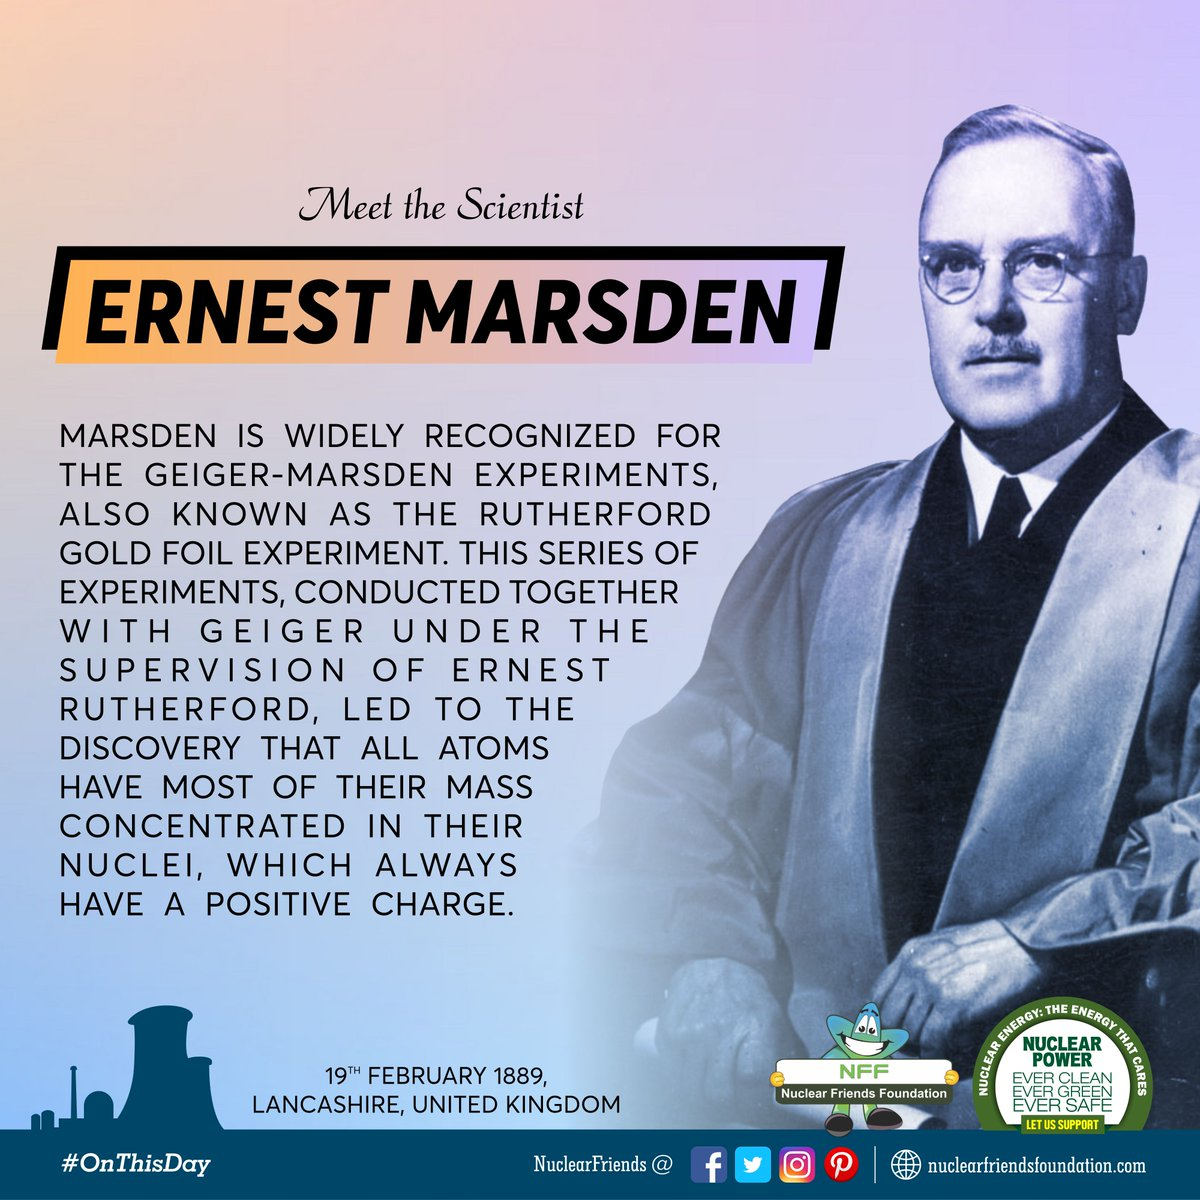 #OnThisDay Meet the scientist Ernest Marsden! 19 February 1889, Lancashire, United Kingdom. Marsden is widely recognized for the Geiger-Marsden experiments,   Reach us @ http://nuclearfriendsfoundation.com  #NuclearPower #NuclearEnergy #Evergreen  #NuclearFacts  #WednesdayWisdom @iaeaorg